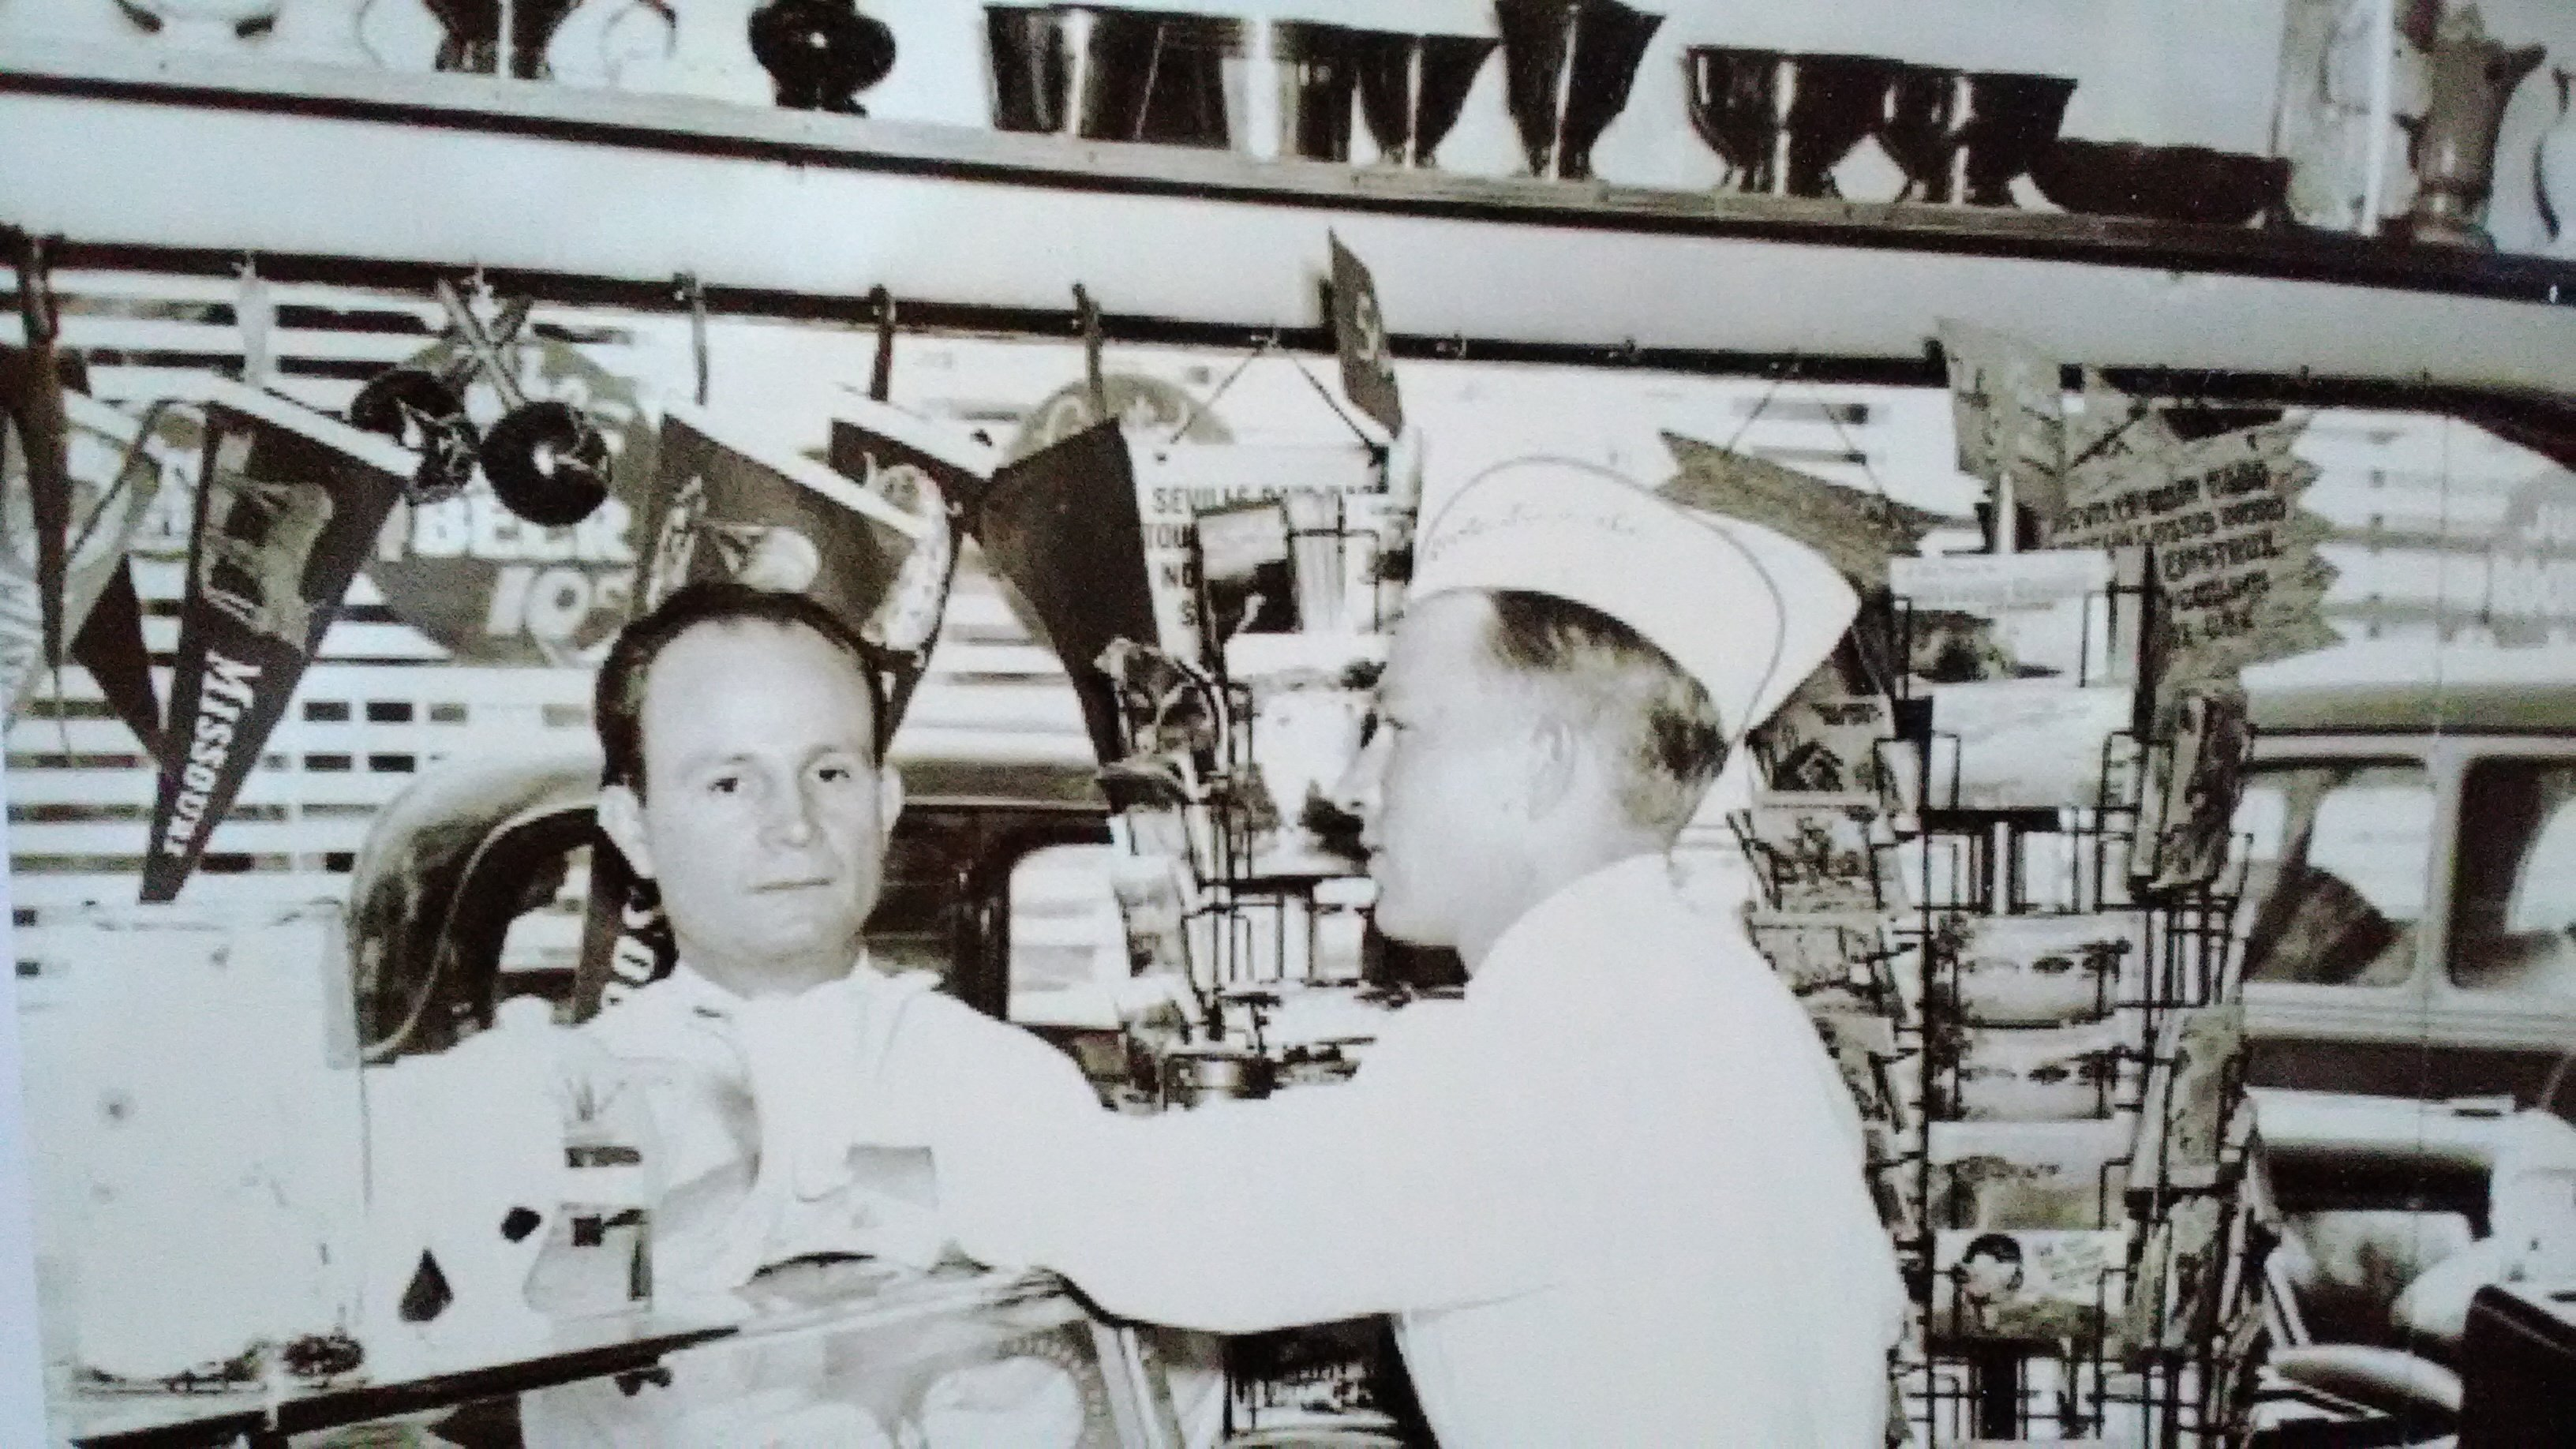 Bob Boots, right, and possibly Lee Crocker, left, at the counter of Boots Drive-In. Boots is standing in front of two postcard racks. Photograph courtesy the late Robert Boots, Powers Museum Collection.